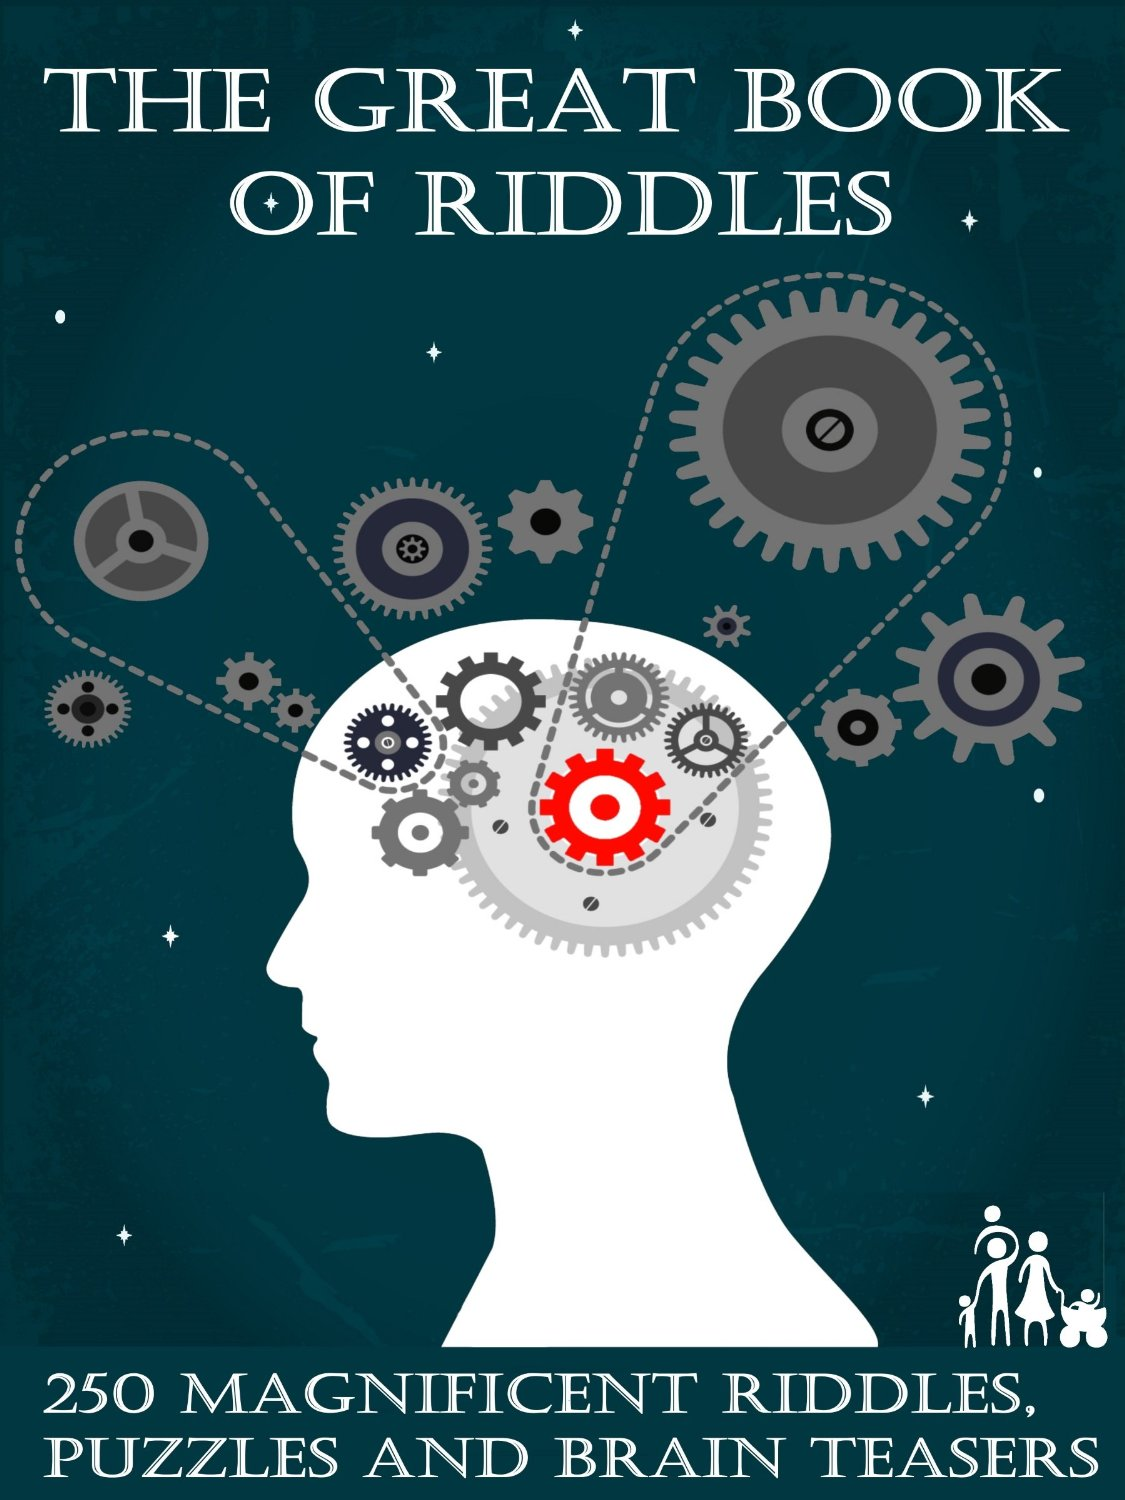 The Great Book of Riddles: 250 Magnificent Riddles, Puzzles and Brain Teasers free download